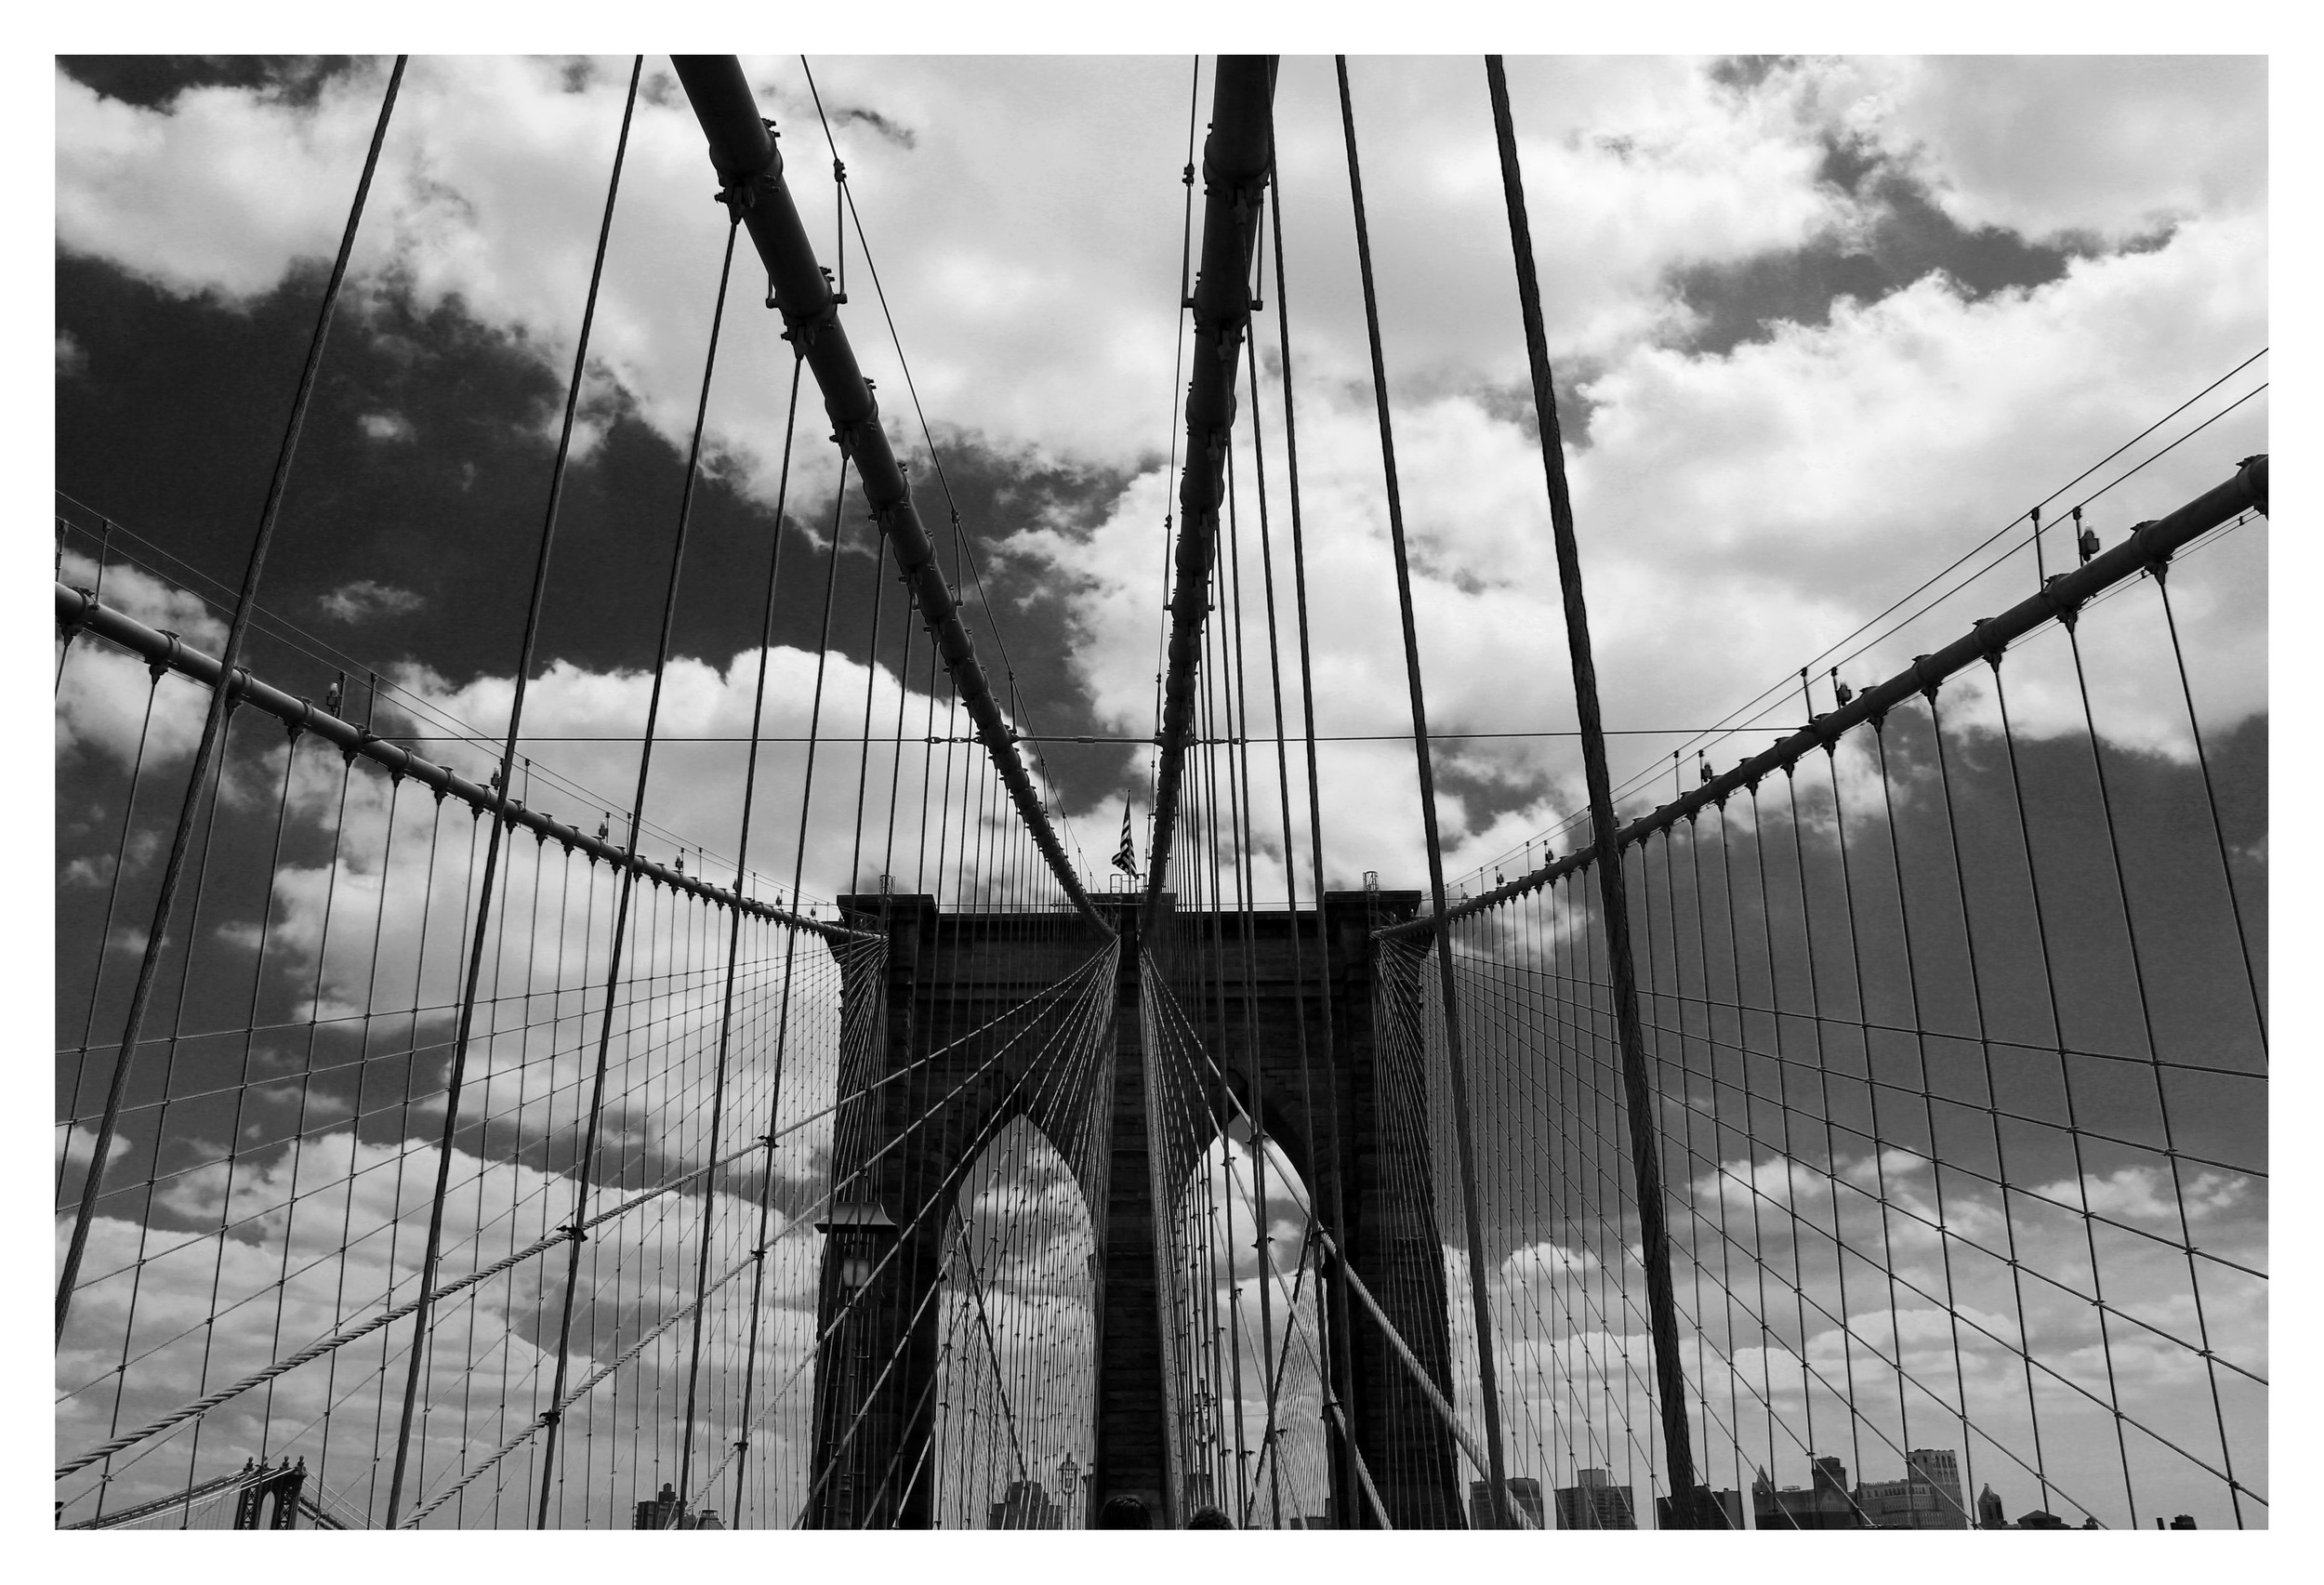 BrooklynBridge2 Kopie.jpg